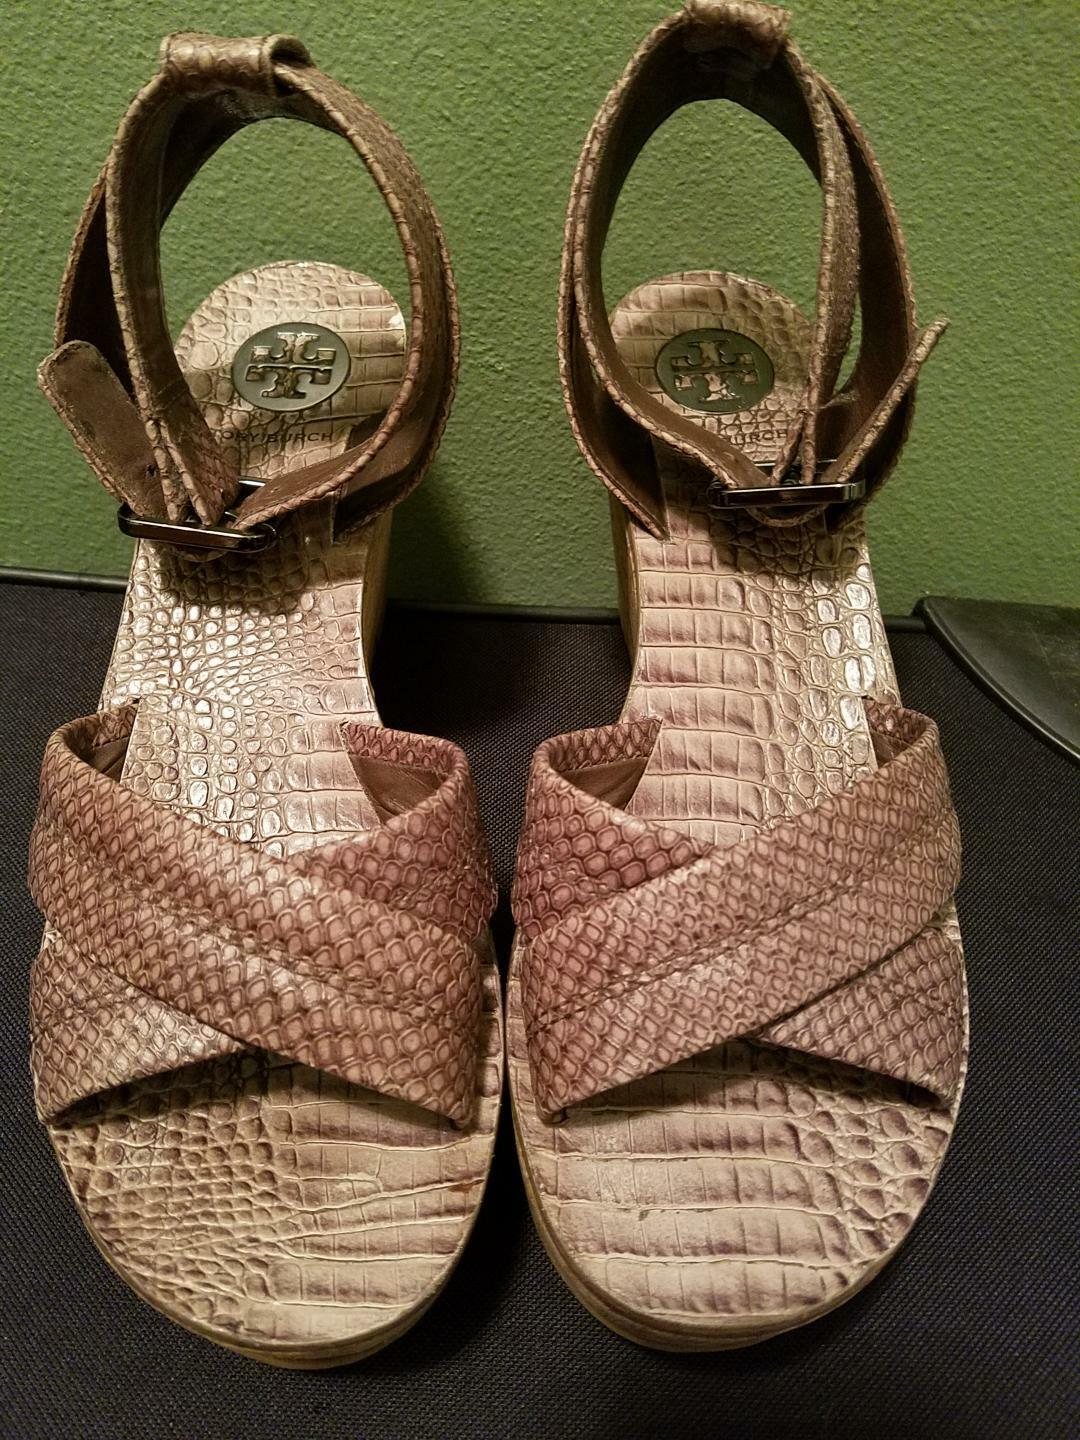 Tory Burch Srappy Cork Wedge Heels Croc Leather Sandals Size 9M Brown